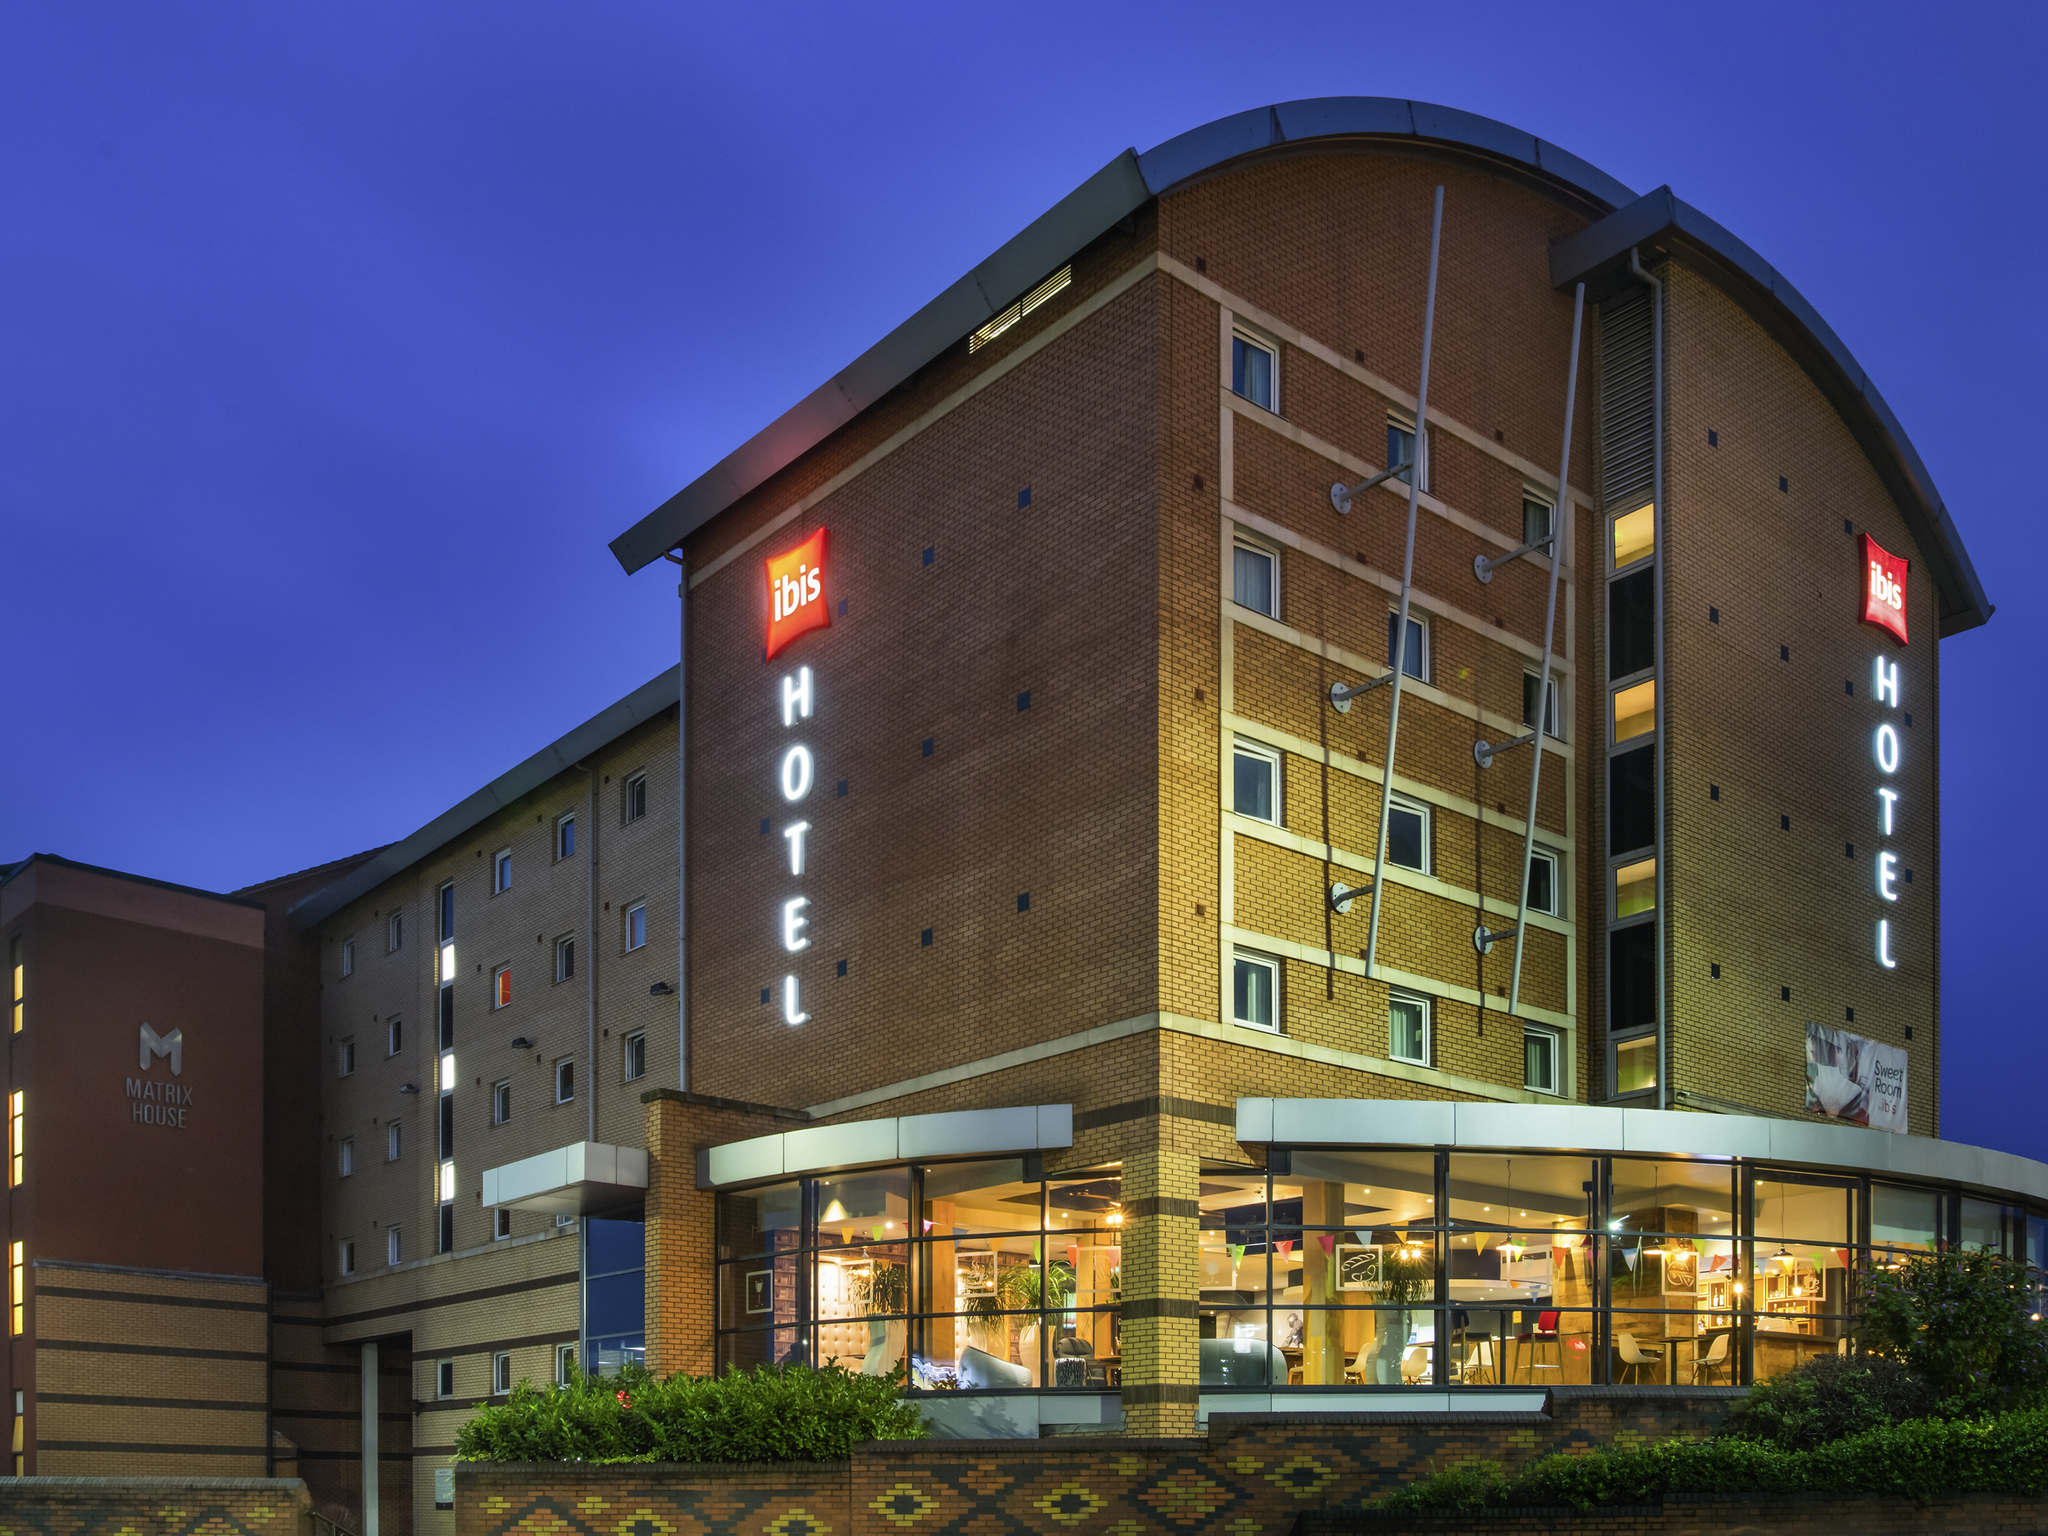 Hotel Ibis Leicester City